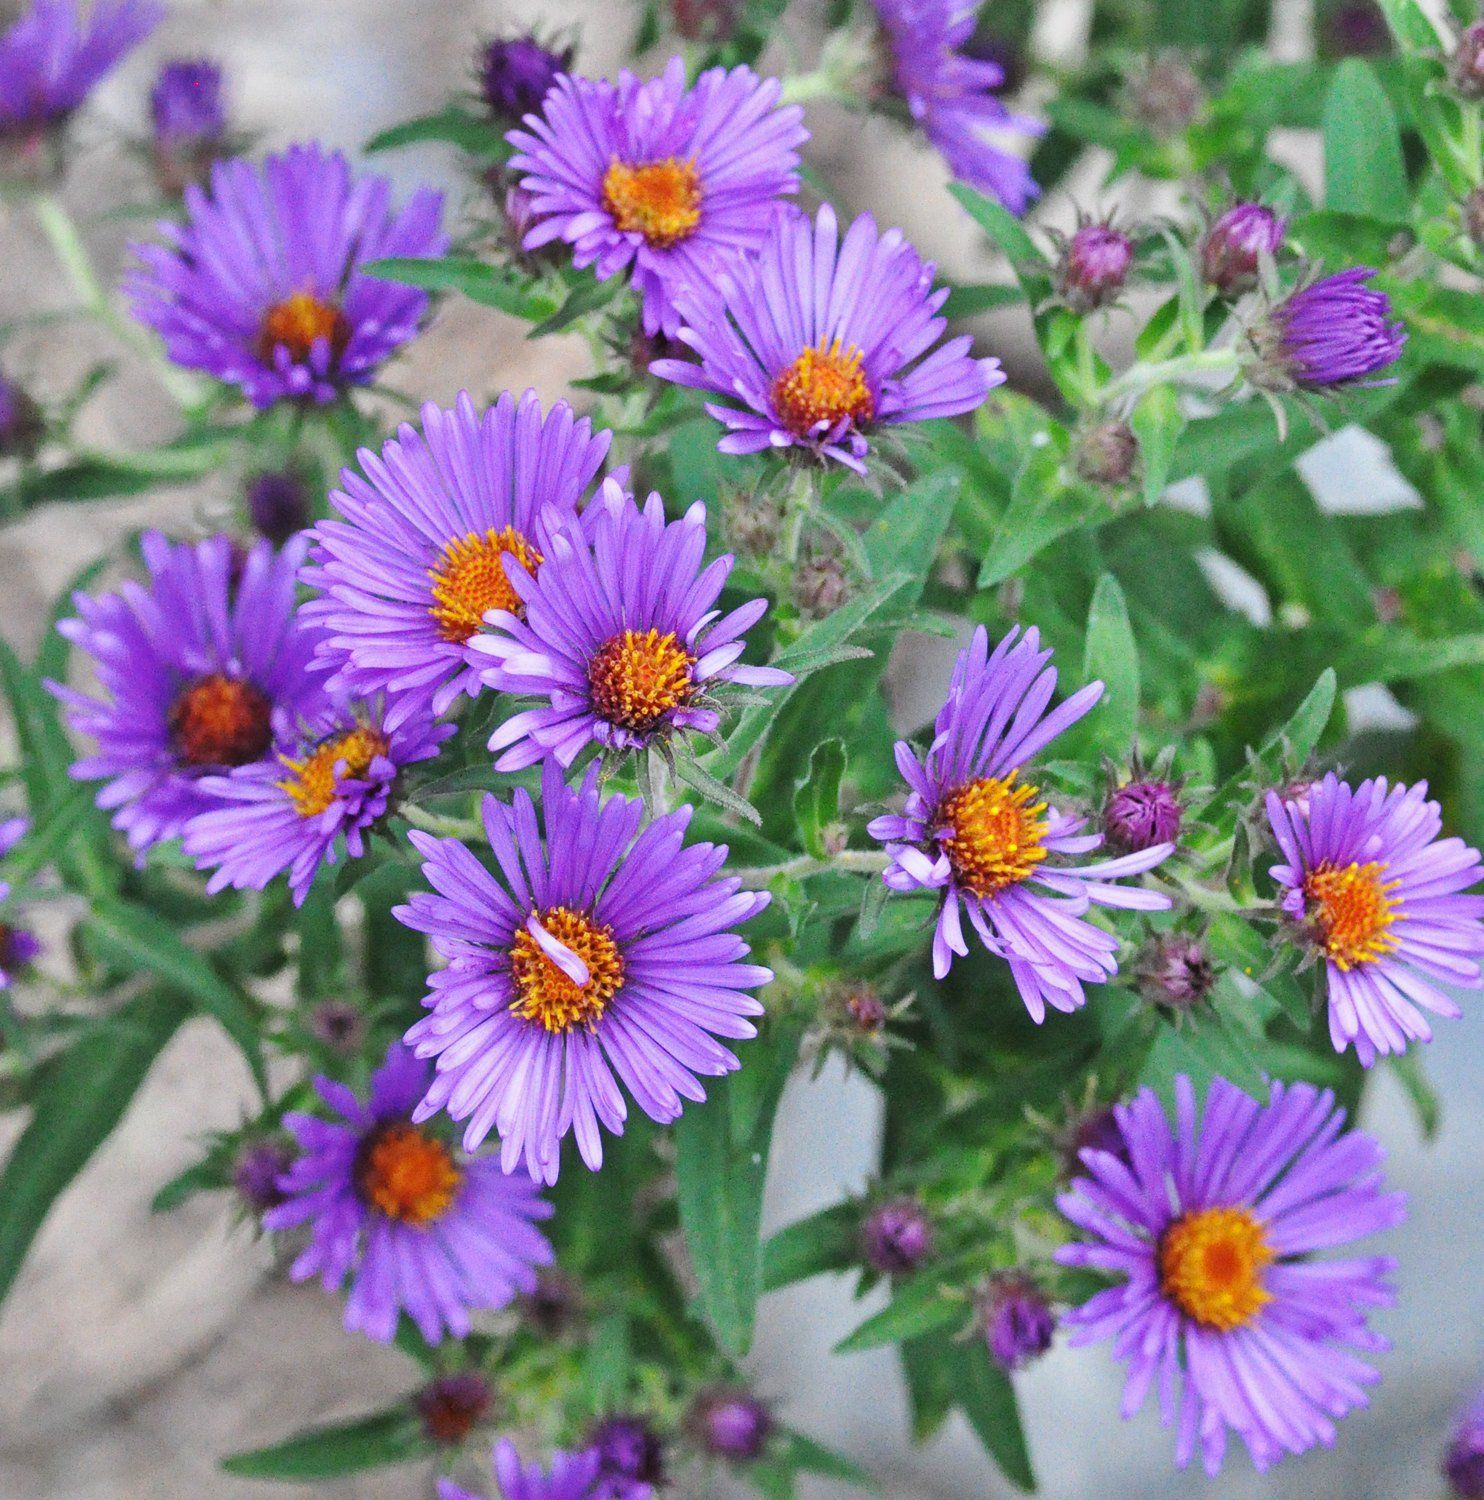 Aster Flowers Seeds New England Aster Novae Angliae 1 Oz Pack Types Of Purple Flowers Flower Seeds Purple Flowers